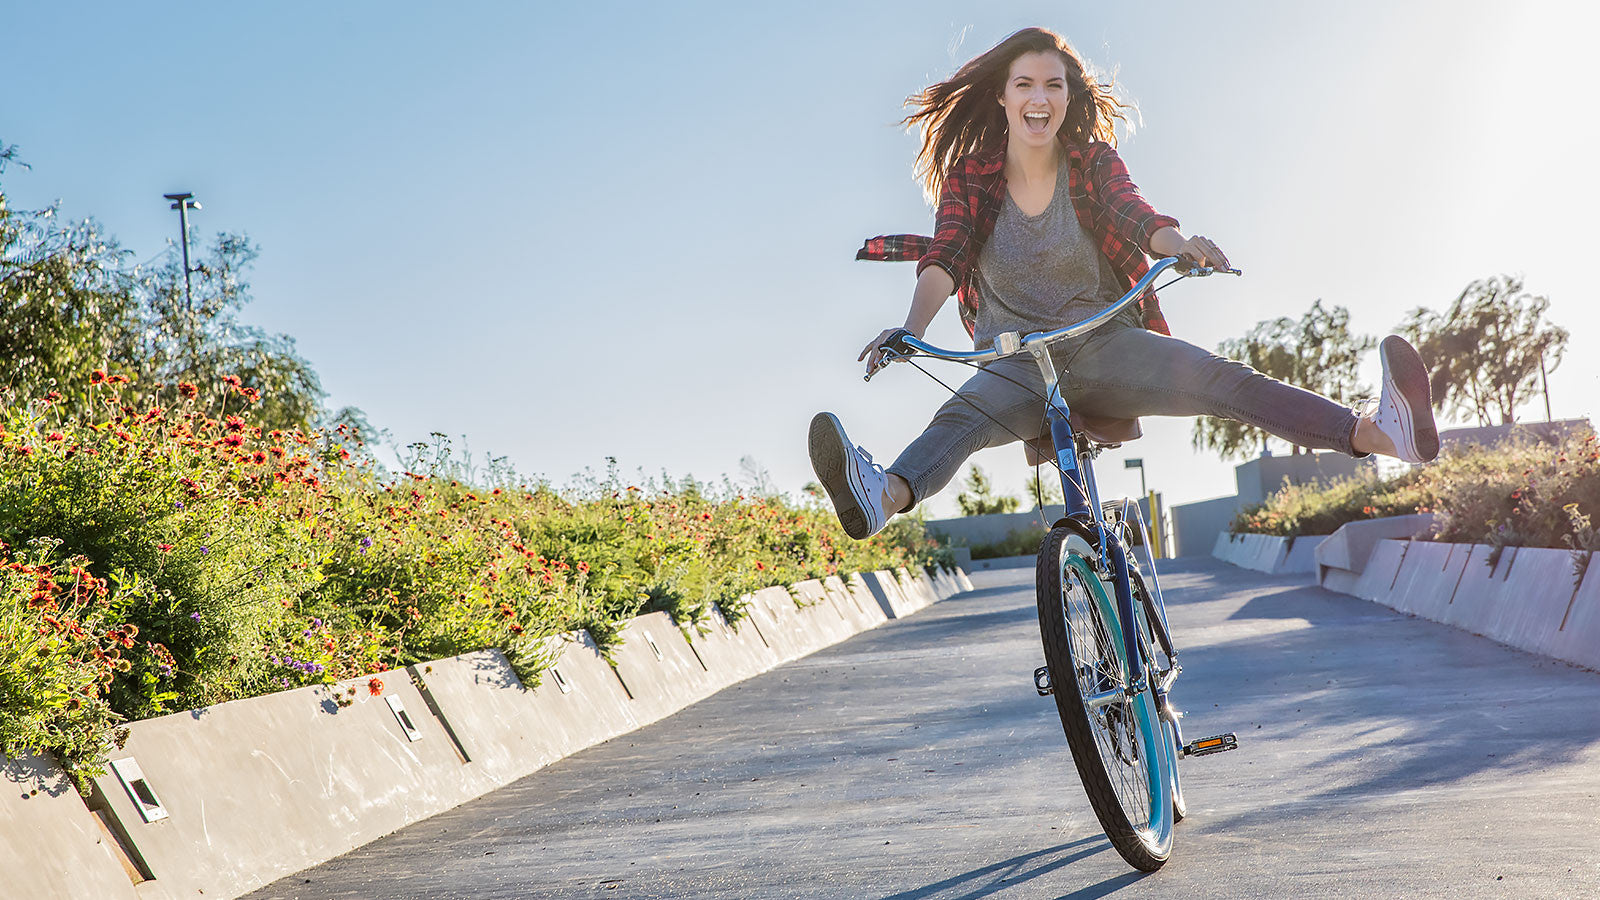 Why Beach Cruiser Bikes For Women Provide a Fun & Rewarding Fitness Activity